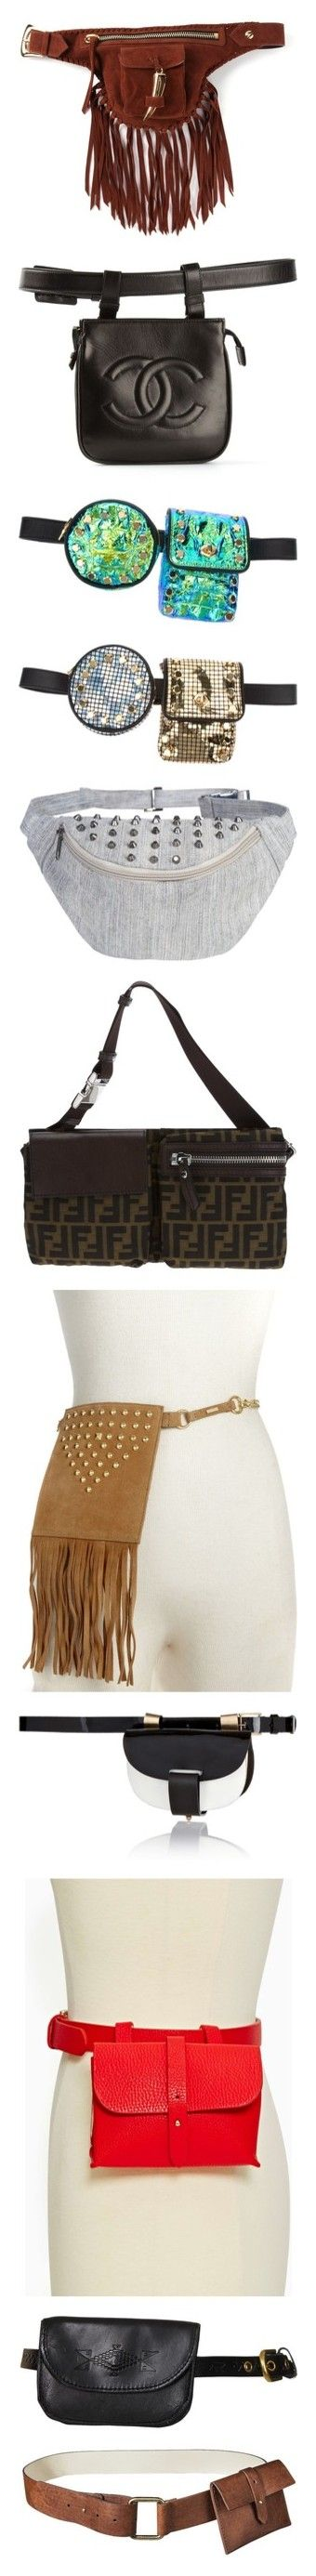 """""""The return of the fanny pack .."""" by aidasusisilva ❤ liked on Polyvore featuring fannypack, pochete, bumbag, bags, bum bag, fanny bag, brown bag, waist bag, suede fringe bag and belts"""